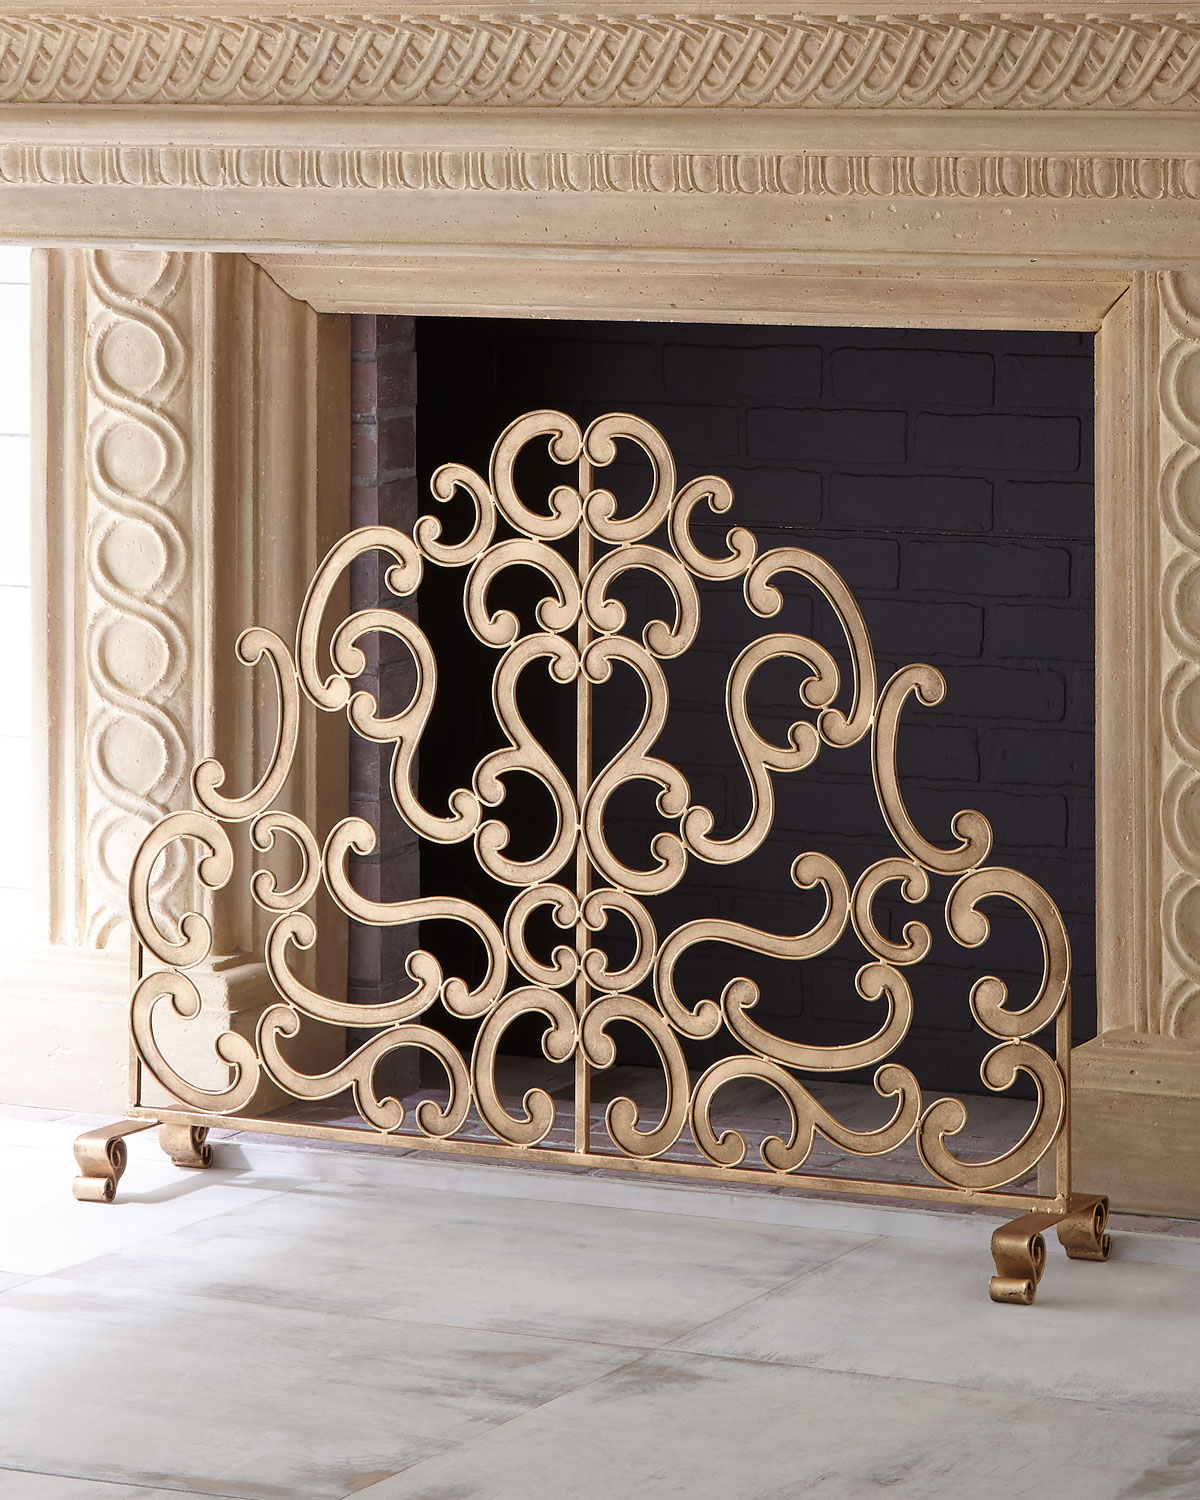 Brass Fireplace Screen Antiqued Gold Iron And Told Double Scroll Single Panel Fireplace Screen